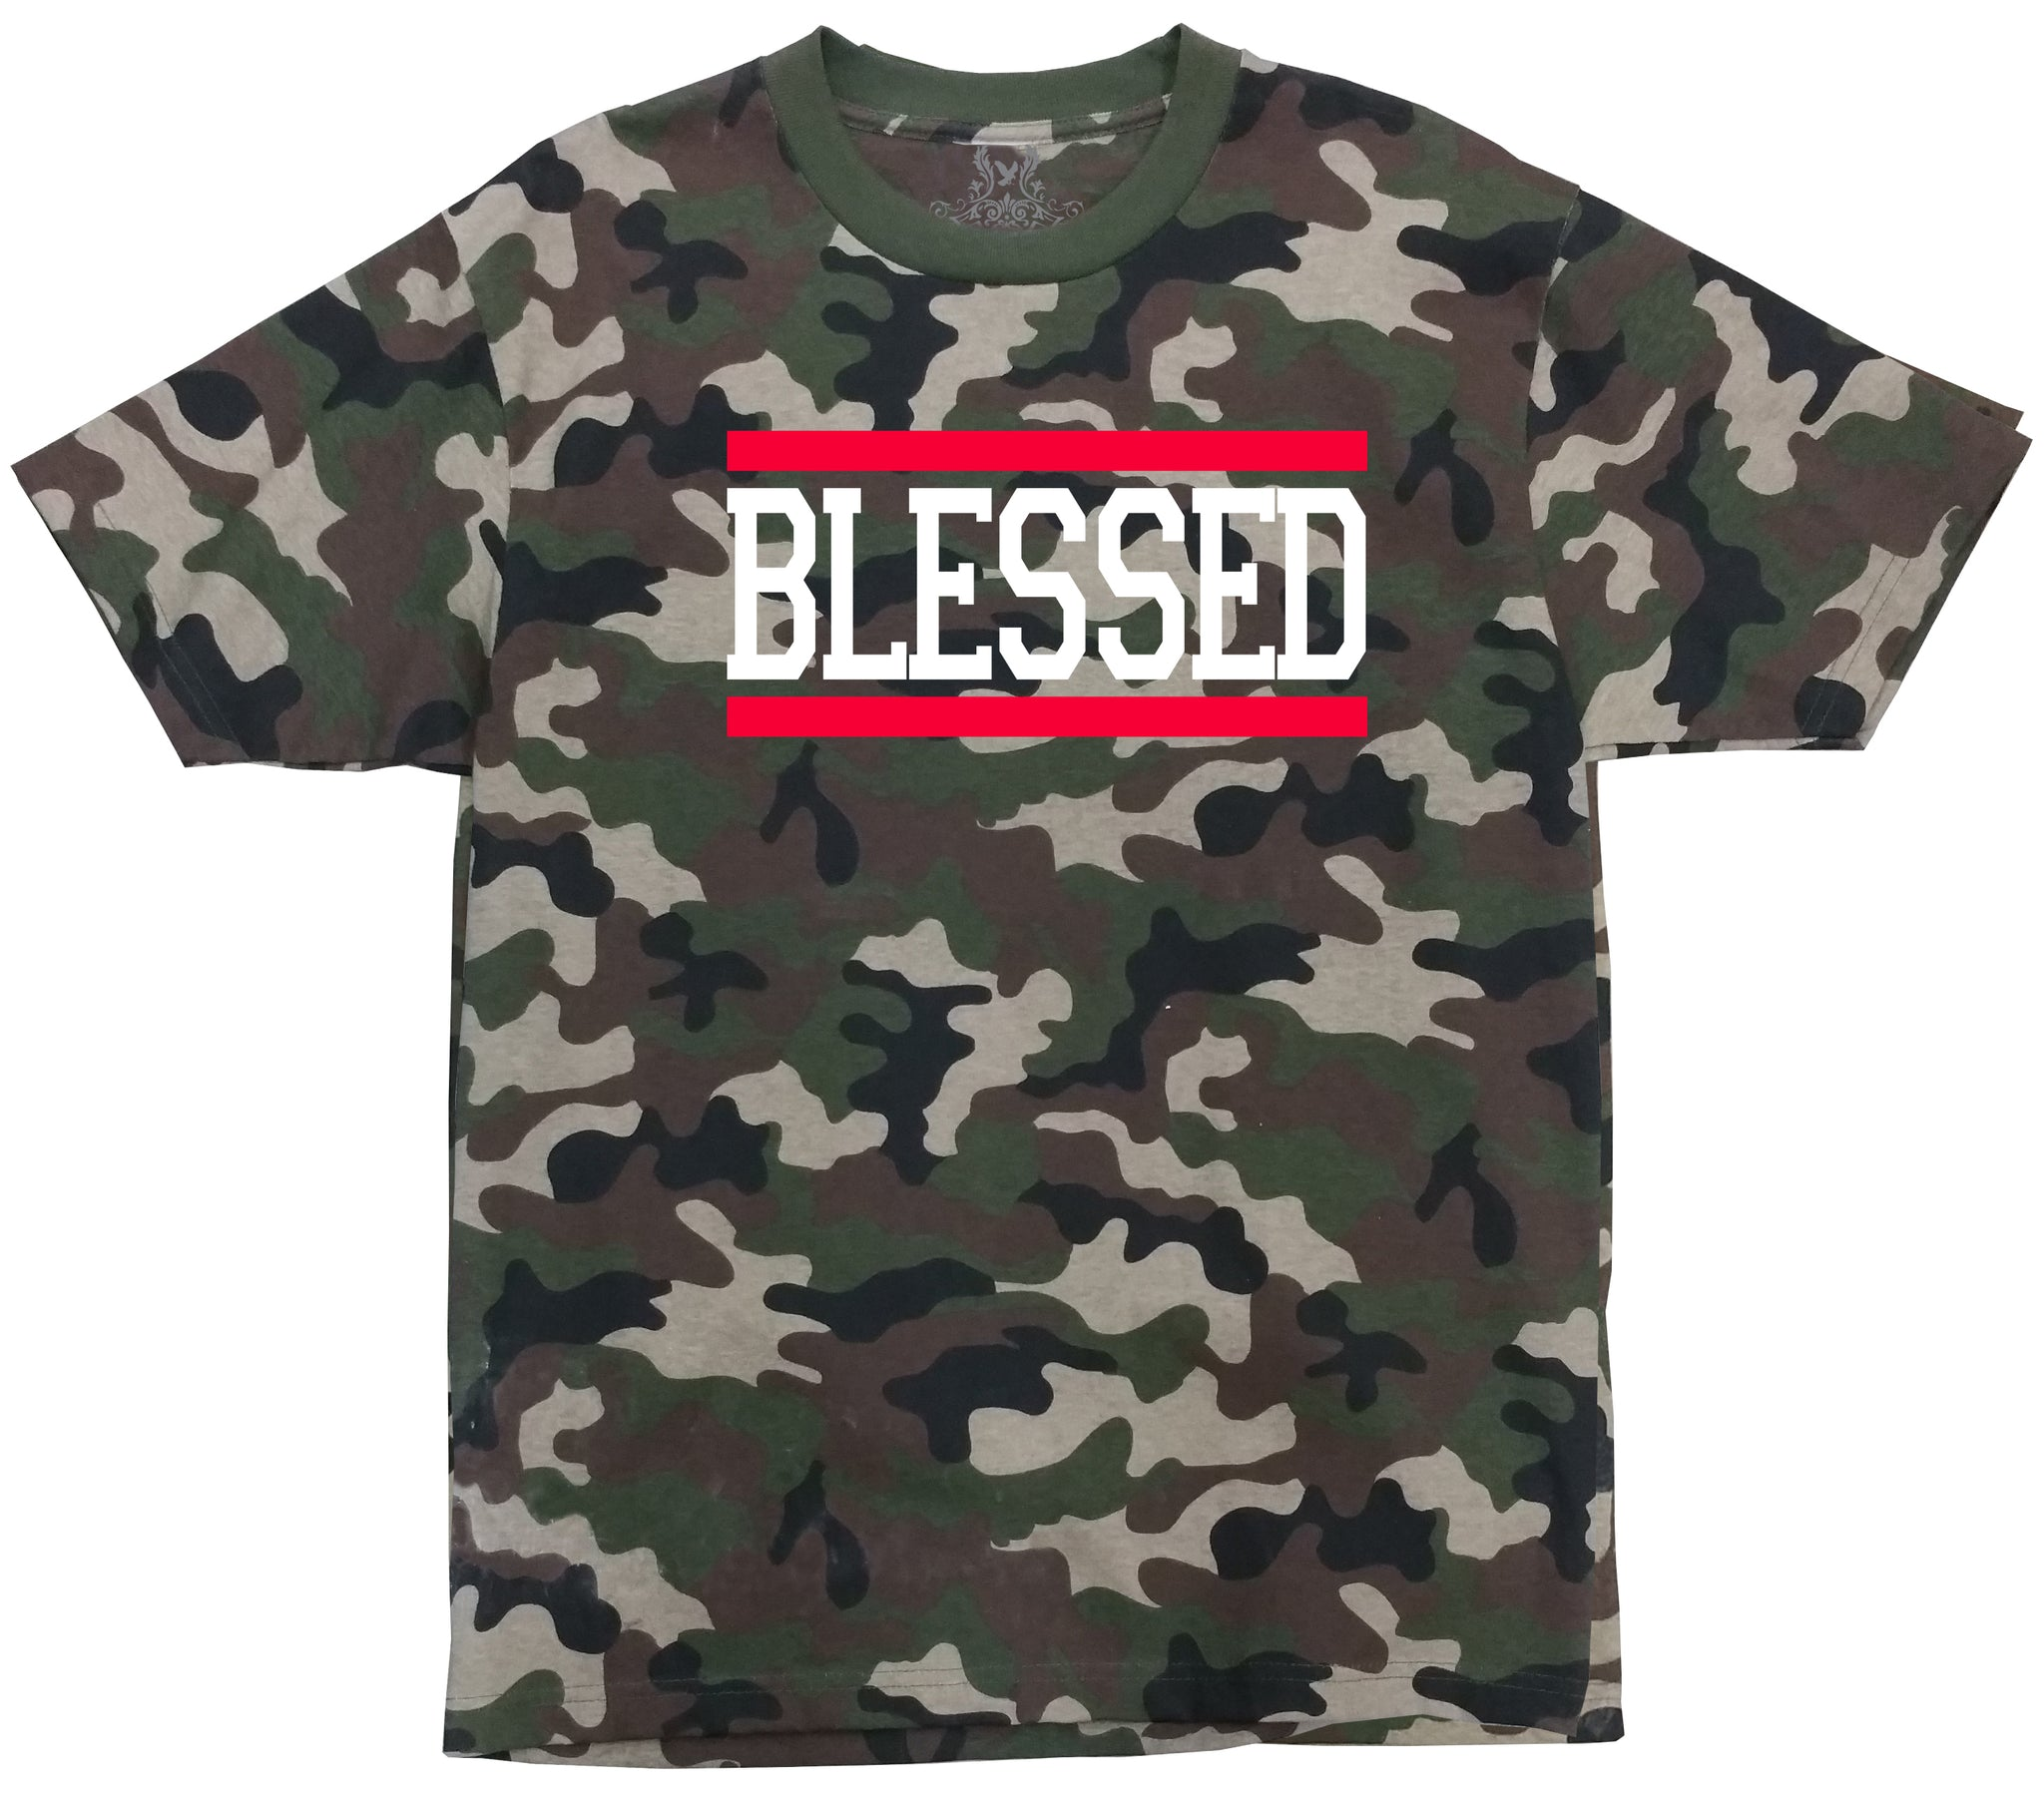 Blessed Print T-Shirt